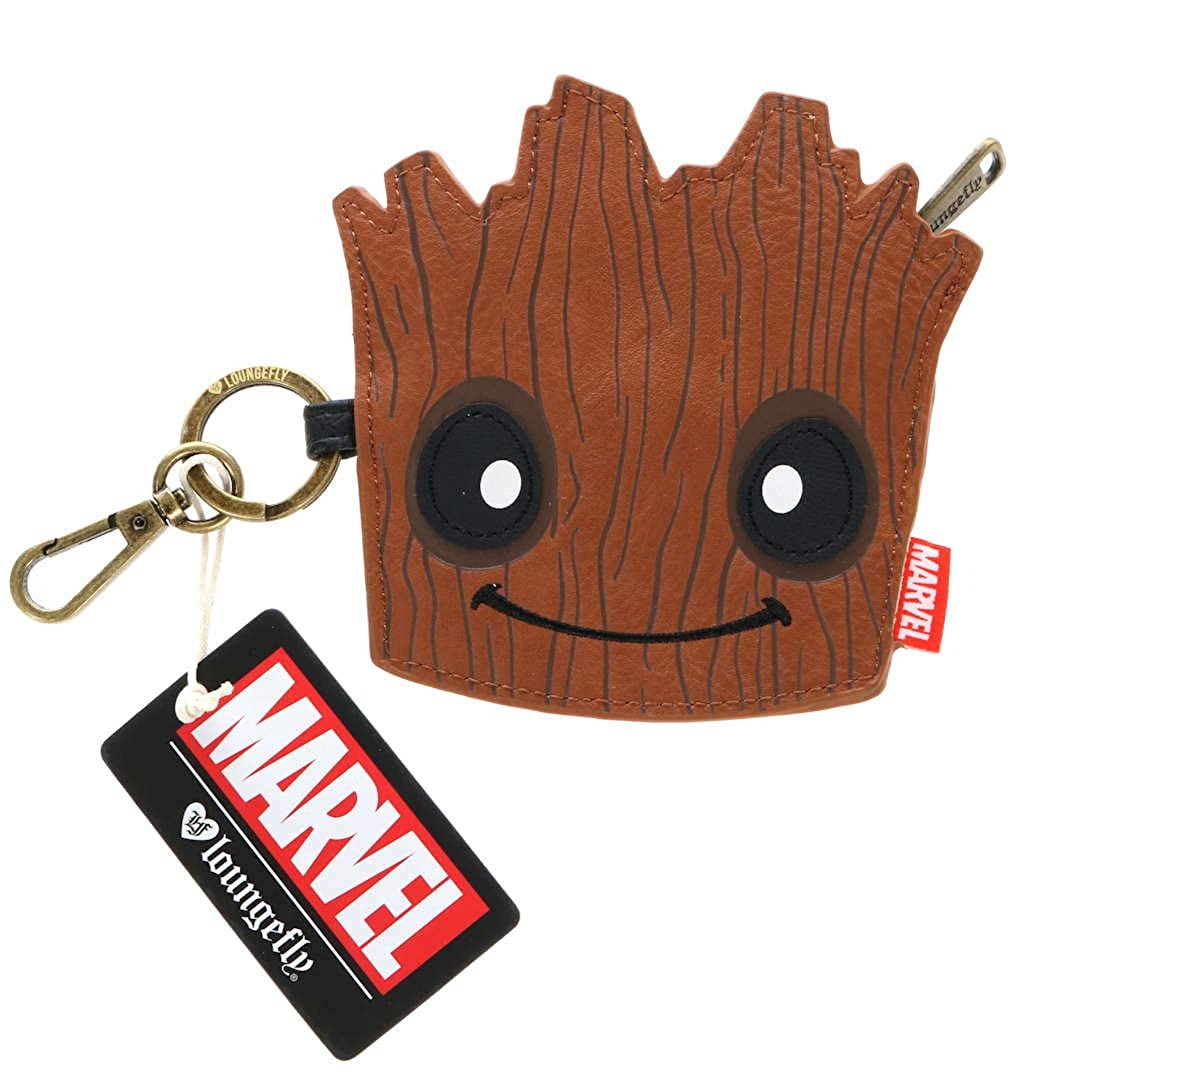 Amazon.com: Loungefly Guardianes de la Galaxia Groot Face ...